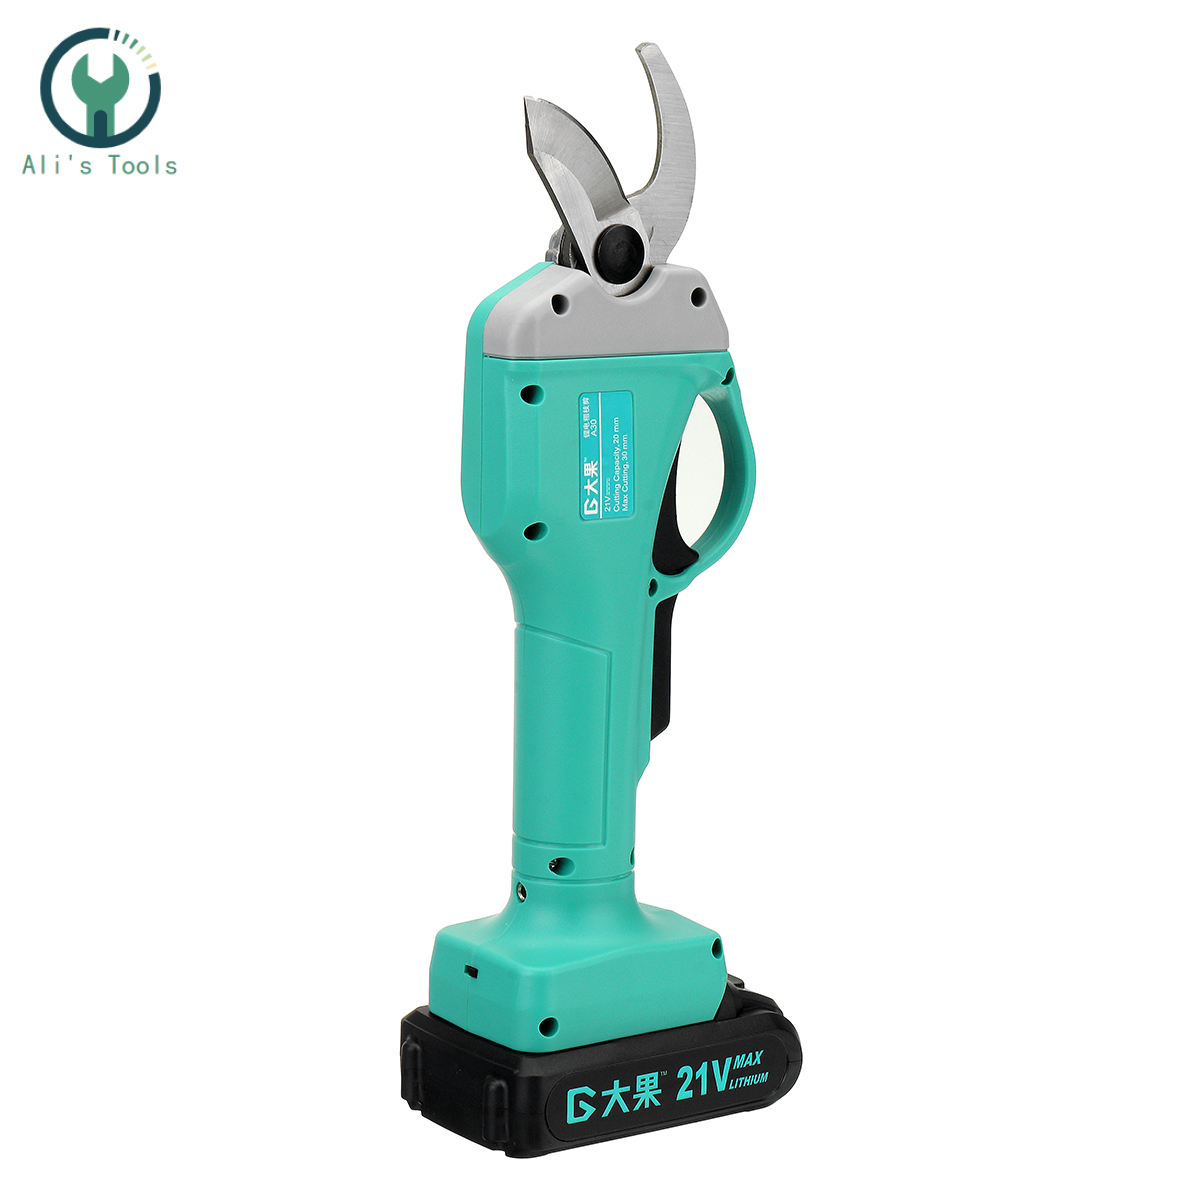 21V Wireless and Rechargeable Electric Garden Scissors for Pruning Branches with 30mm Maximum Cutting and 2 Li-ion Battery 3